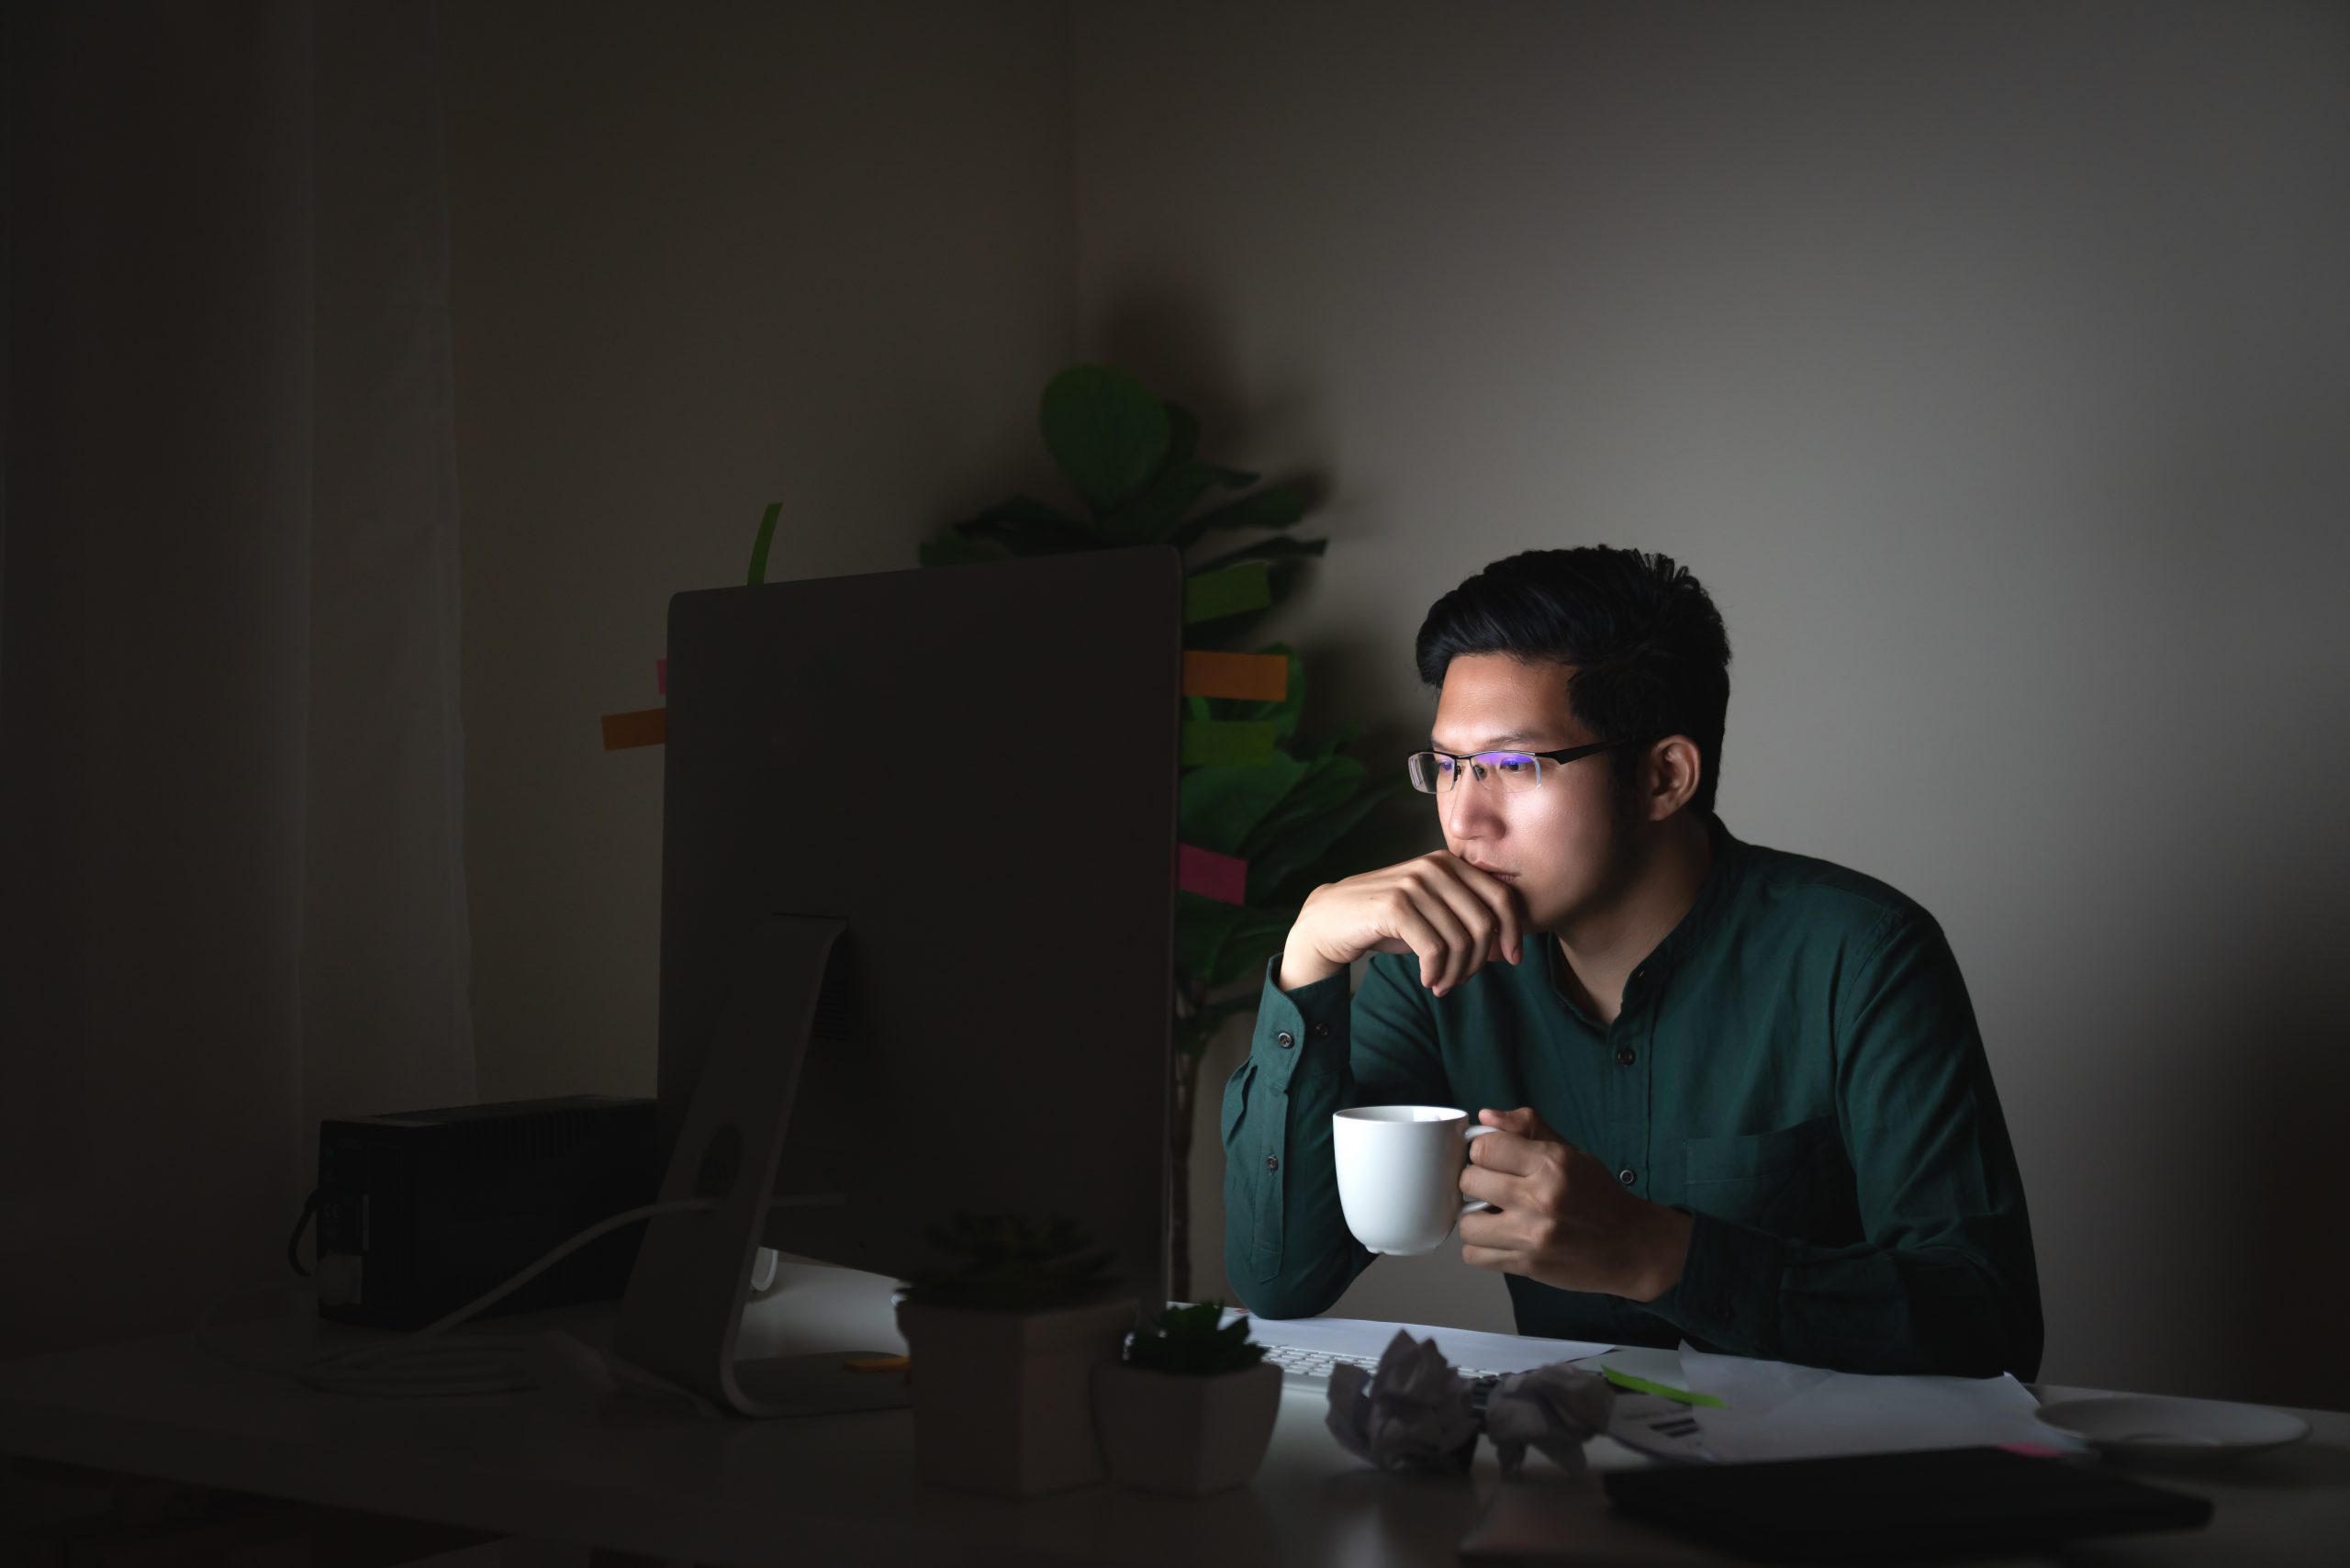 young man staring at a computer screen and holding a white coffee cup in a dark room